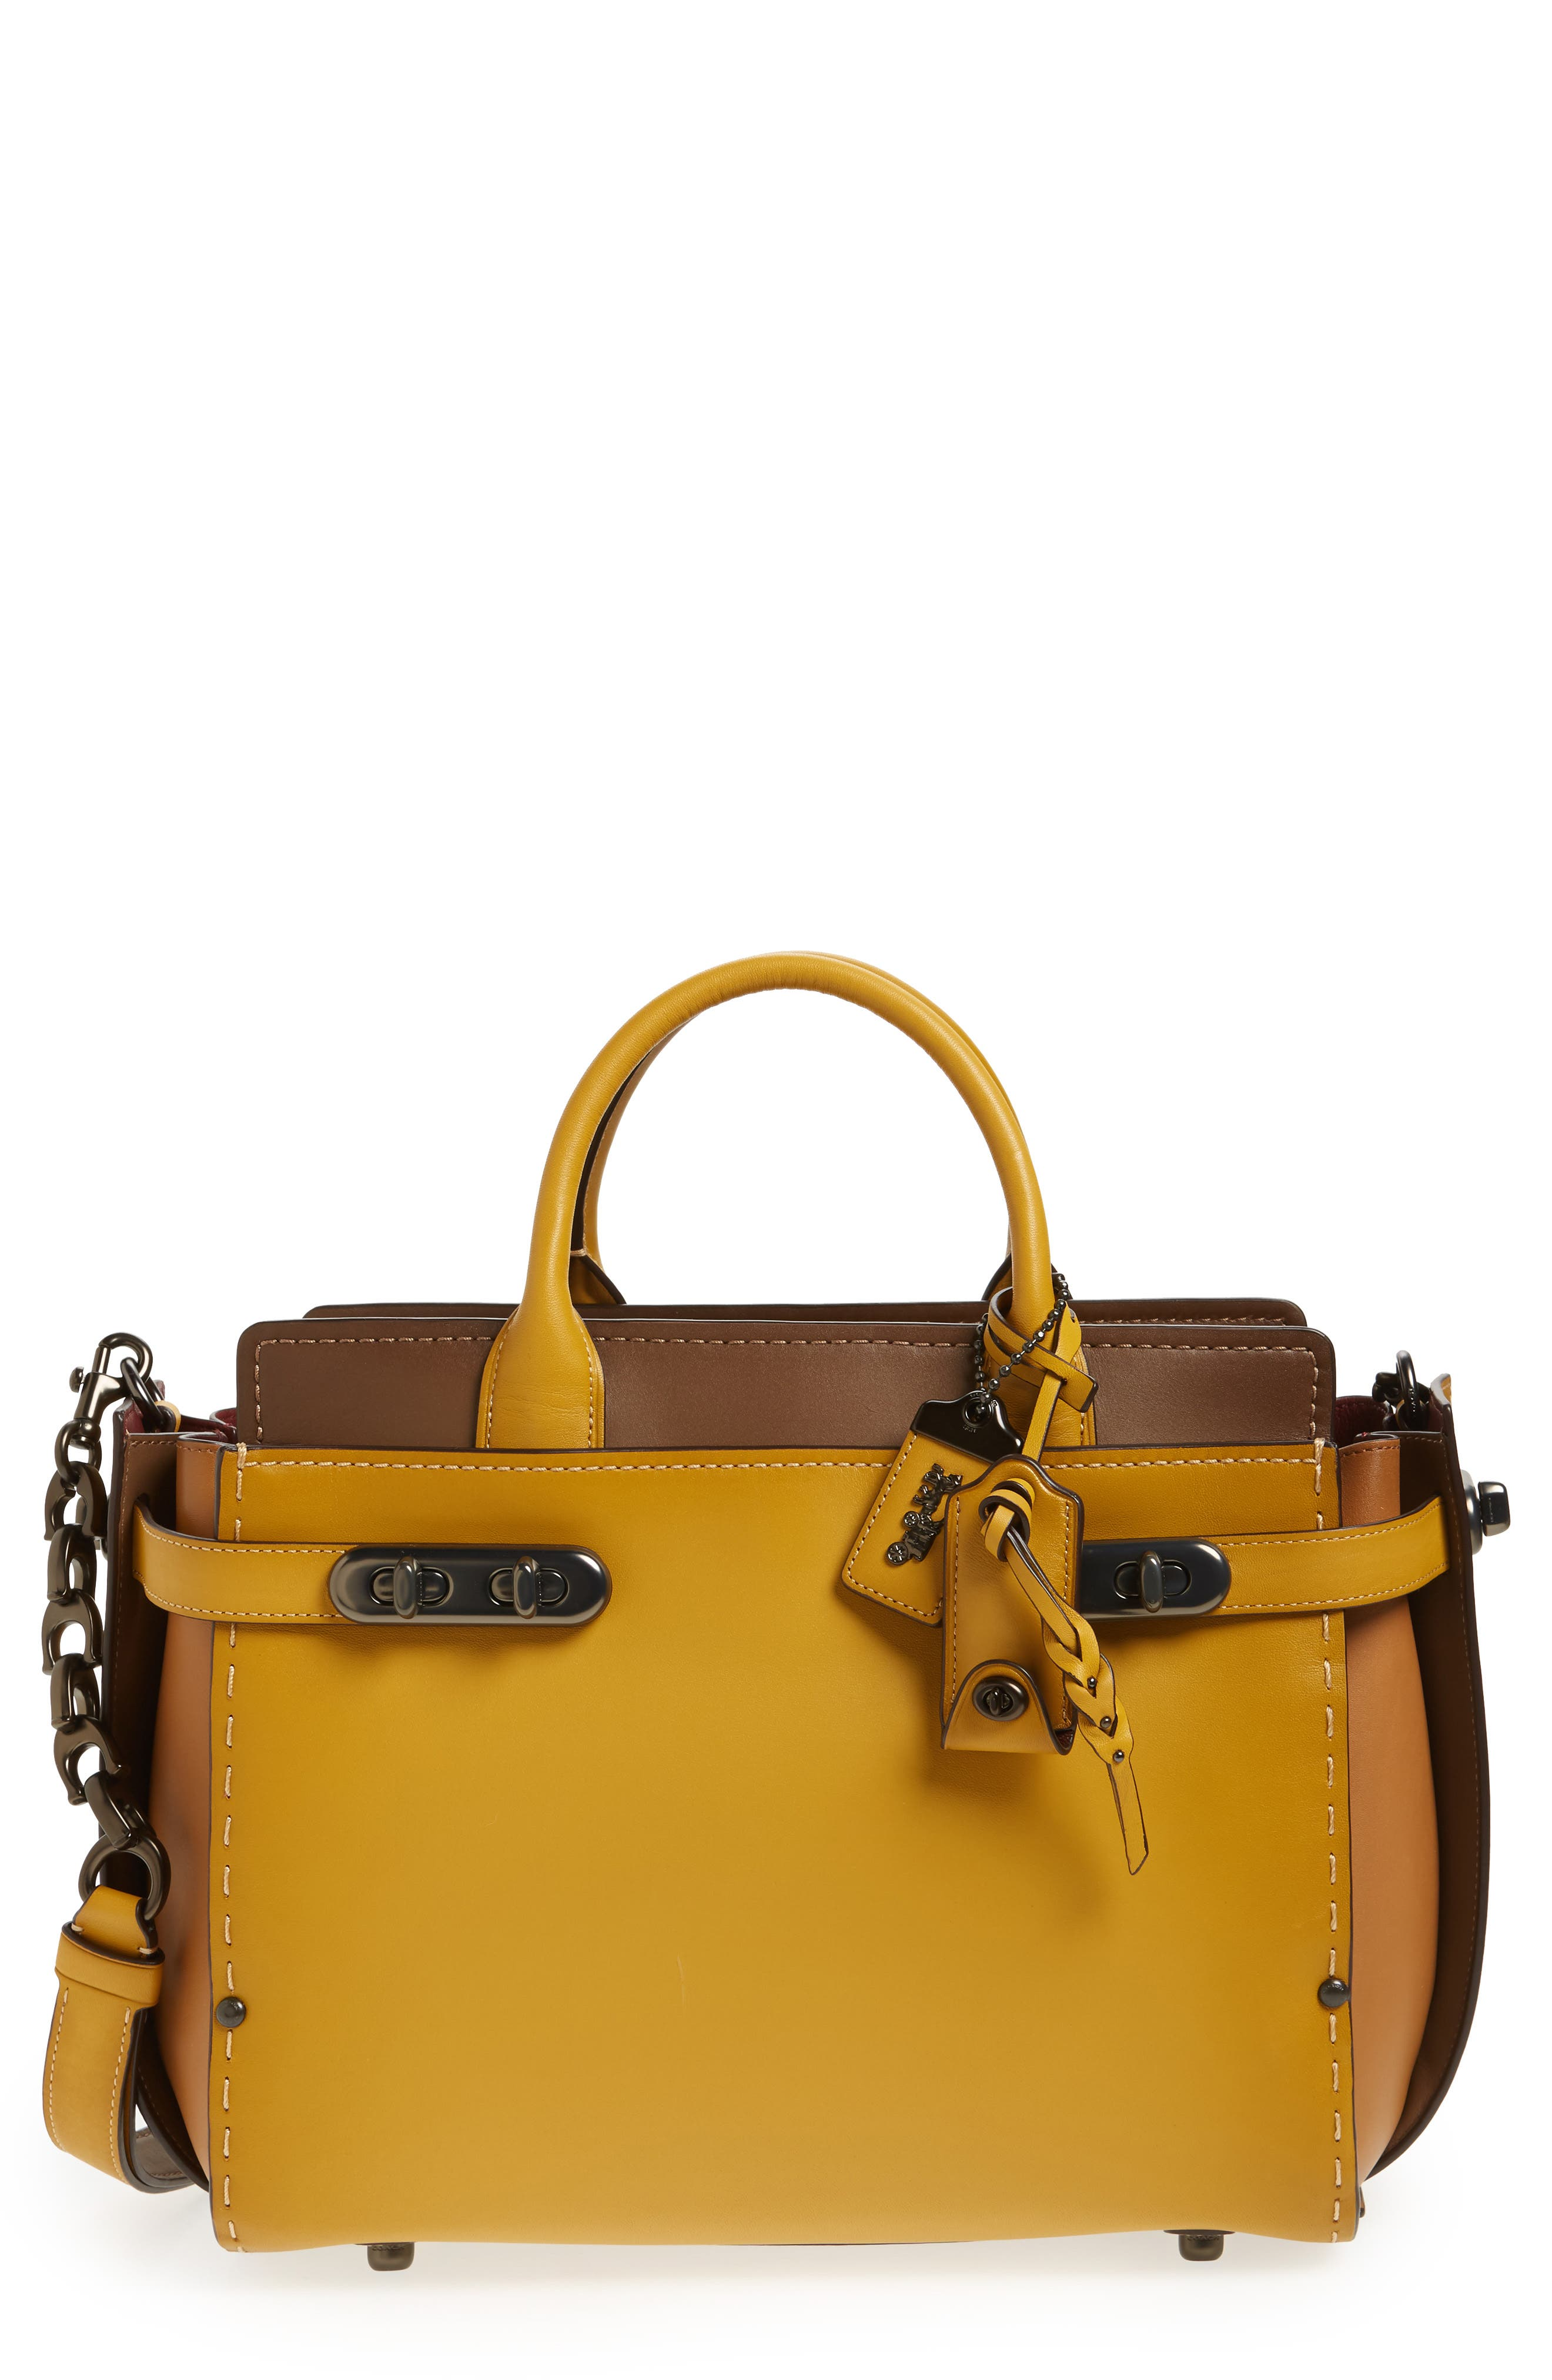 COACH Double Swagger Leather Satchel,                         Main,                         color, 700